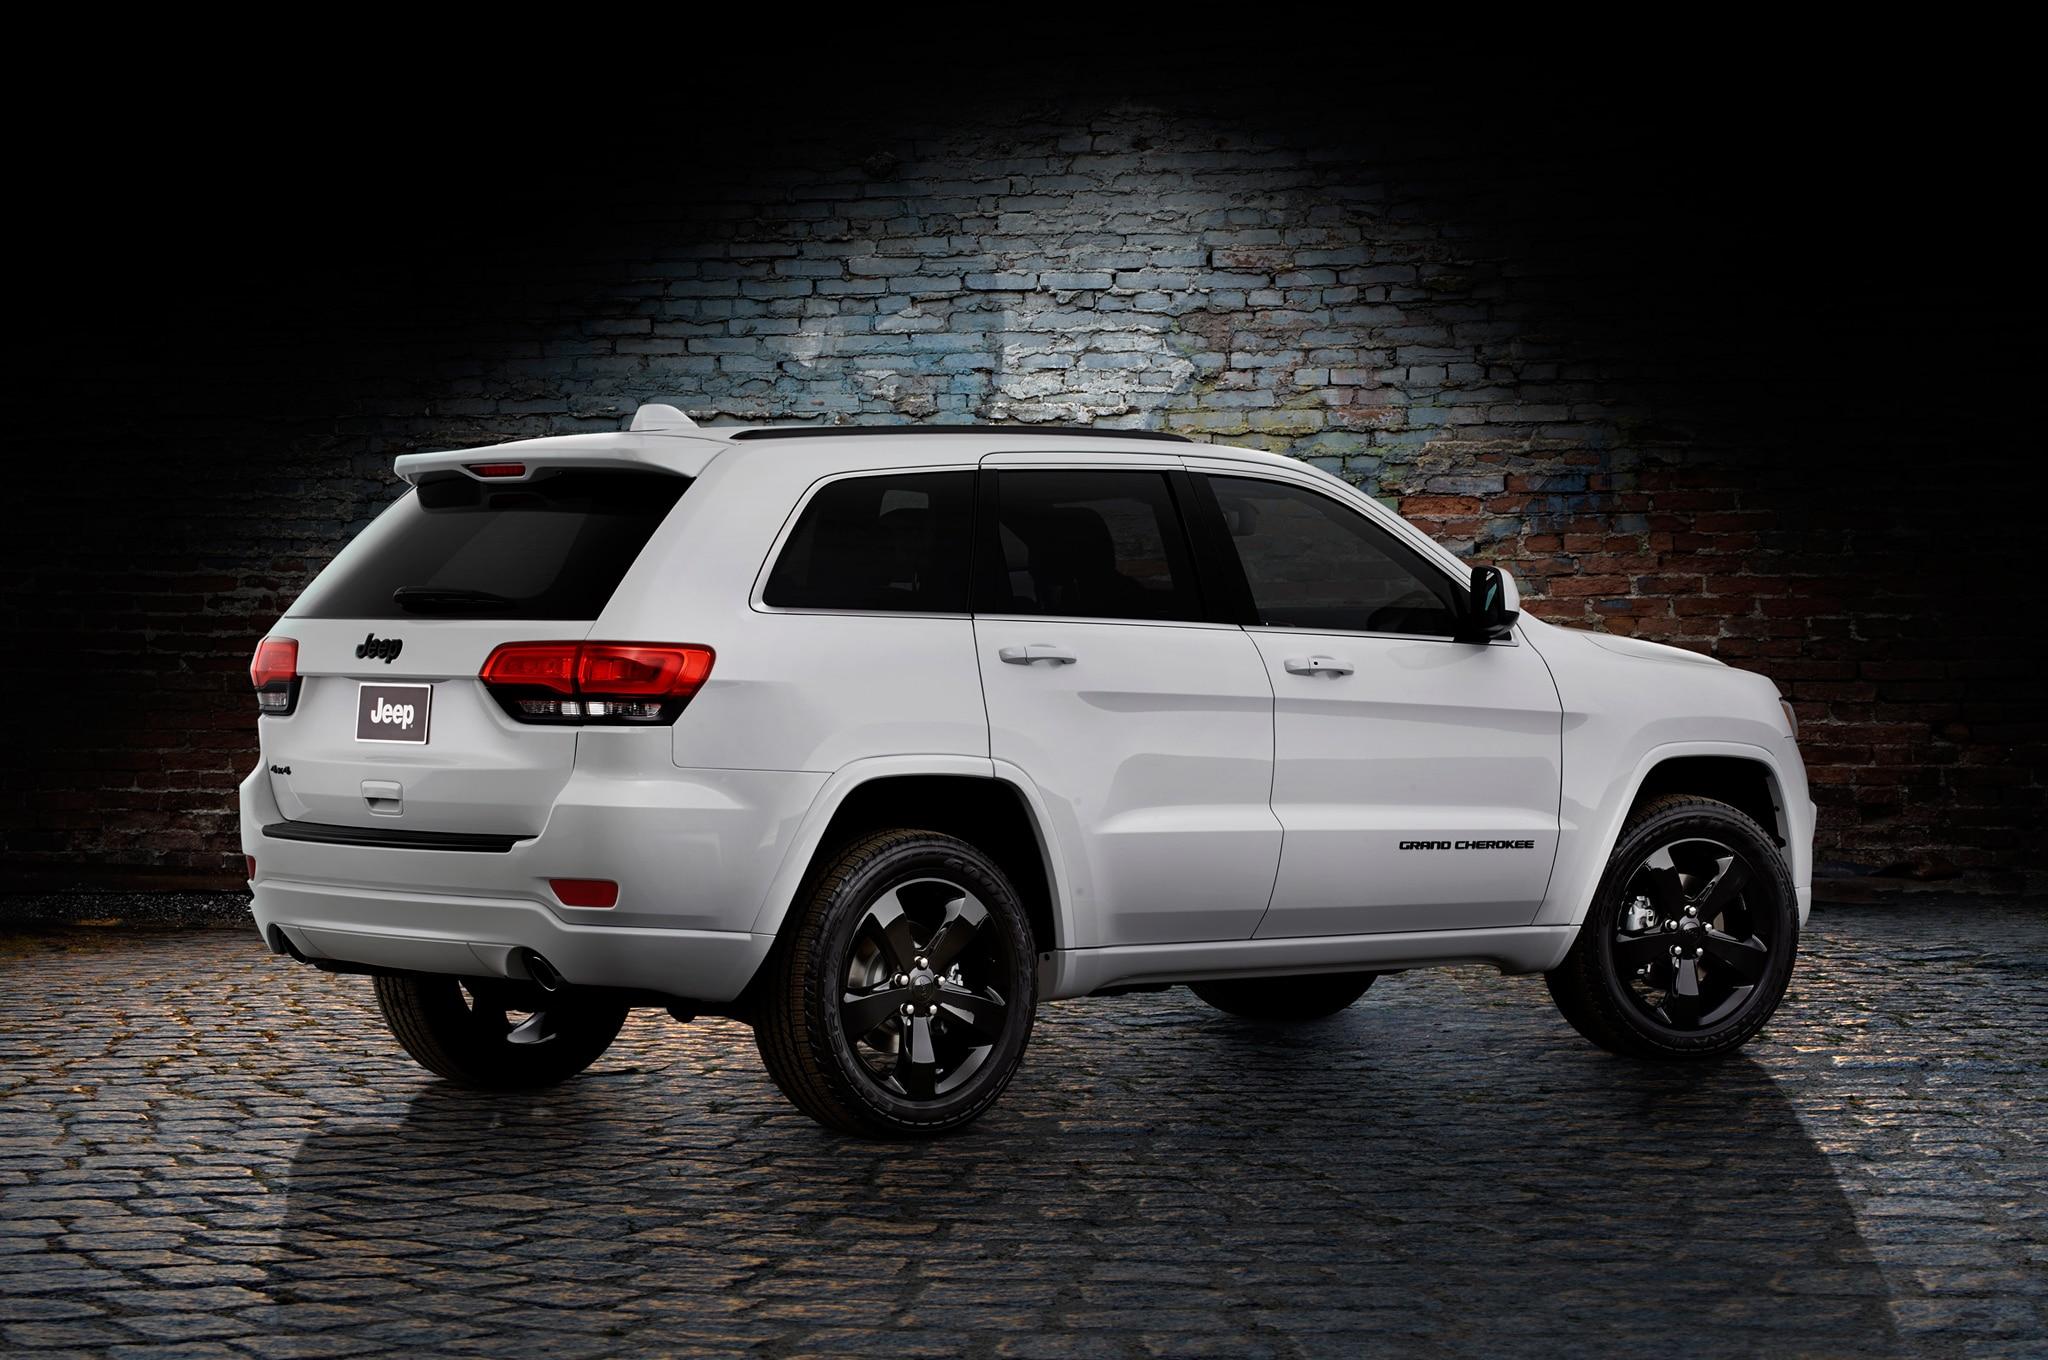 2014 jeep cherokee, grand cherokee, and wrangler gain altitude